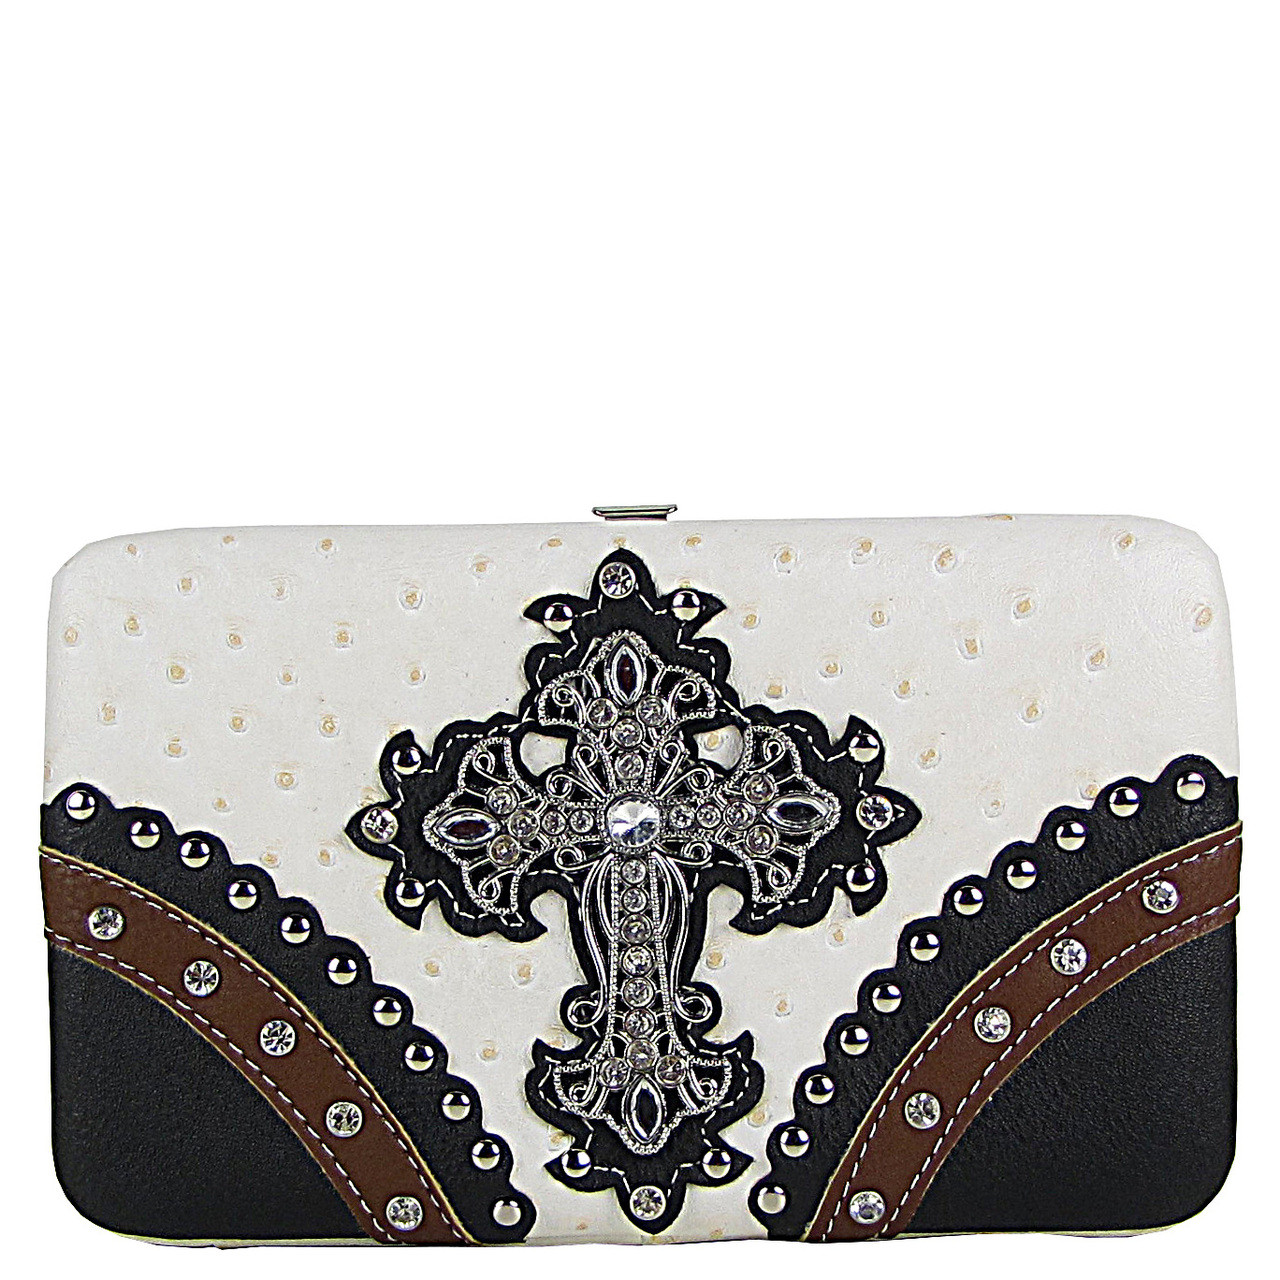 WHITE OSTRICH STUDDED RHINESTONE CROSS FLAT THICK WALLET FW2-04106WHT